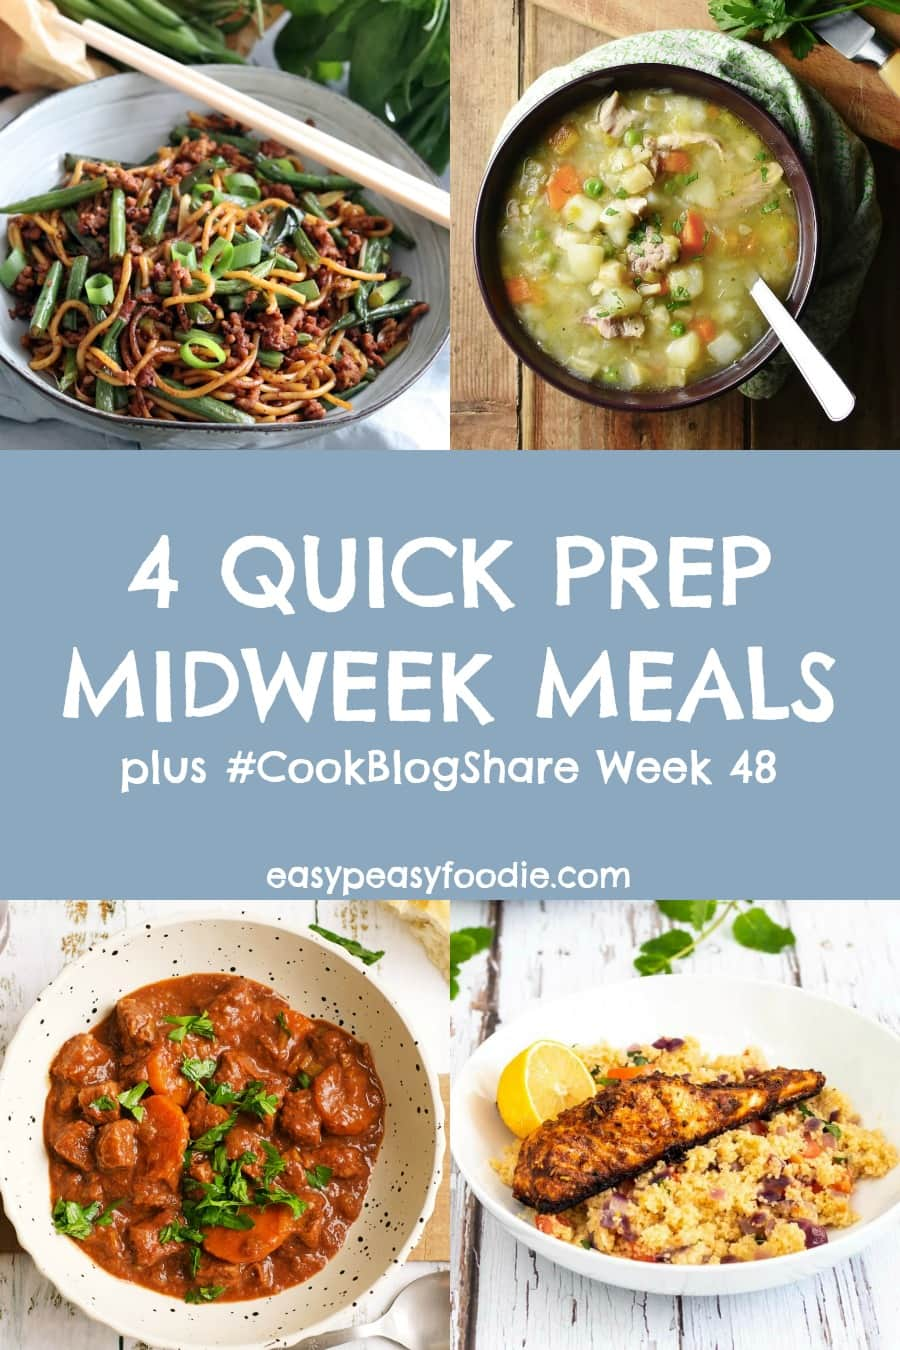 Need a midweek meal that doesn't take a lot of time to prepare? Then check out these 4 fabulous Quick Prep Midweek Meals. Each one is packed full of flavour but involves minimal prep – perfect for busy evenings. Plus find the linky below for MY LAST #CookBlogShare! #quickpreprecipes #midweekmeals #quickprepmeals #quickprepmidweekmeals #quickrecipes #easymidweekmeals #quickmeals #dinnertonight #soup #salmon #raselhanout #beefstew #stirfry #noodles #weeknightdinners #familydinners #easypeasyfoodie